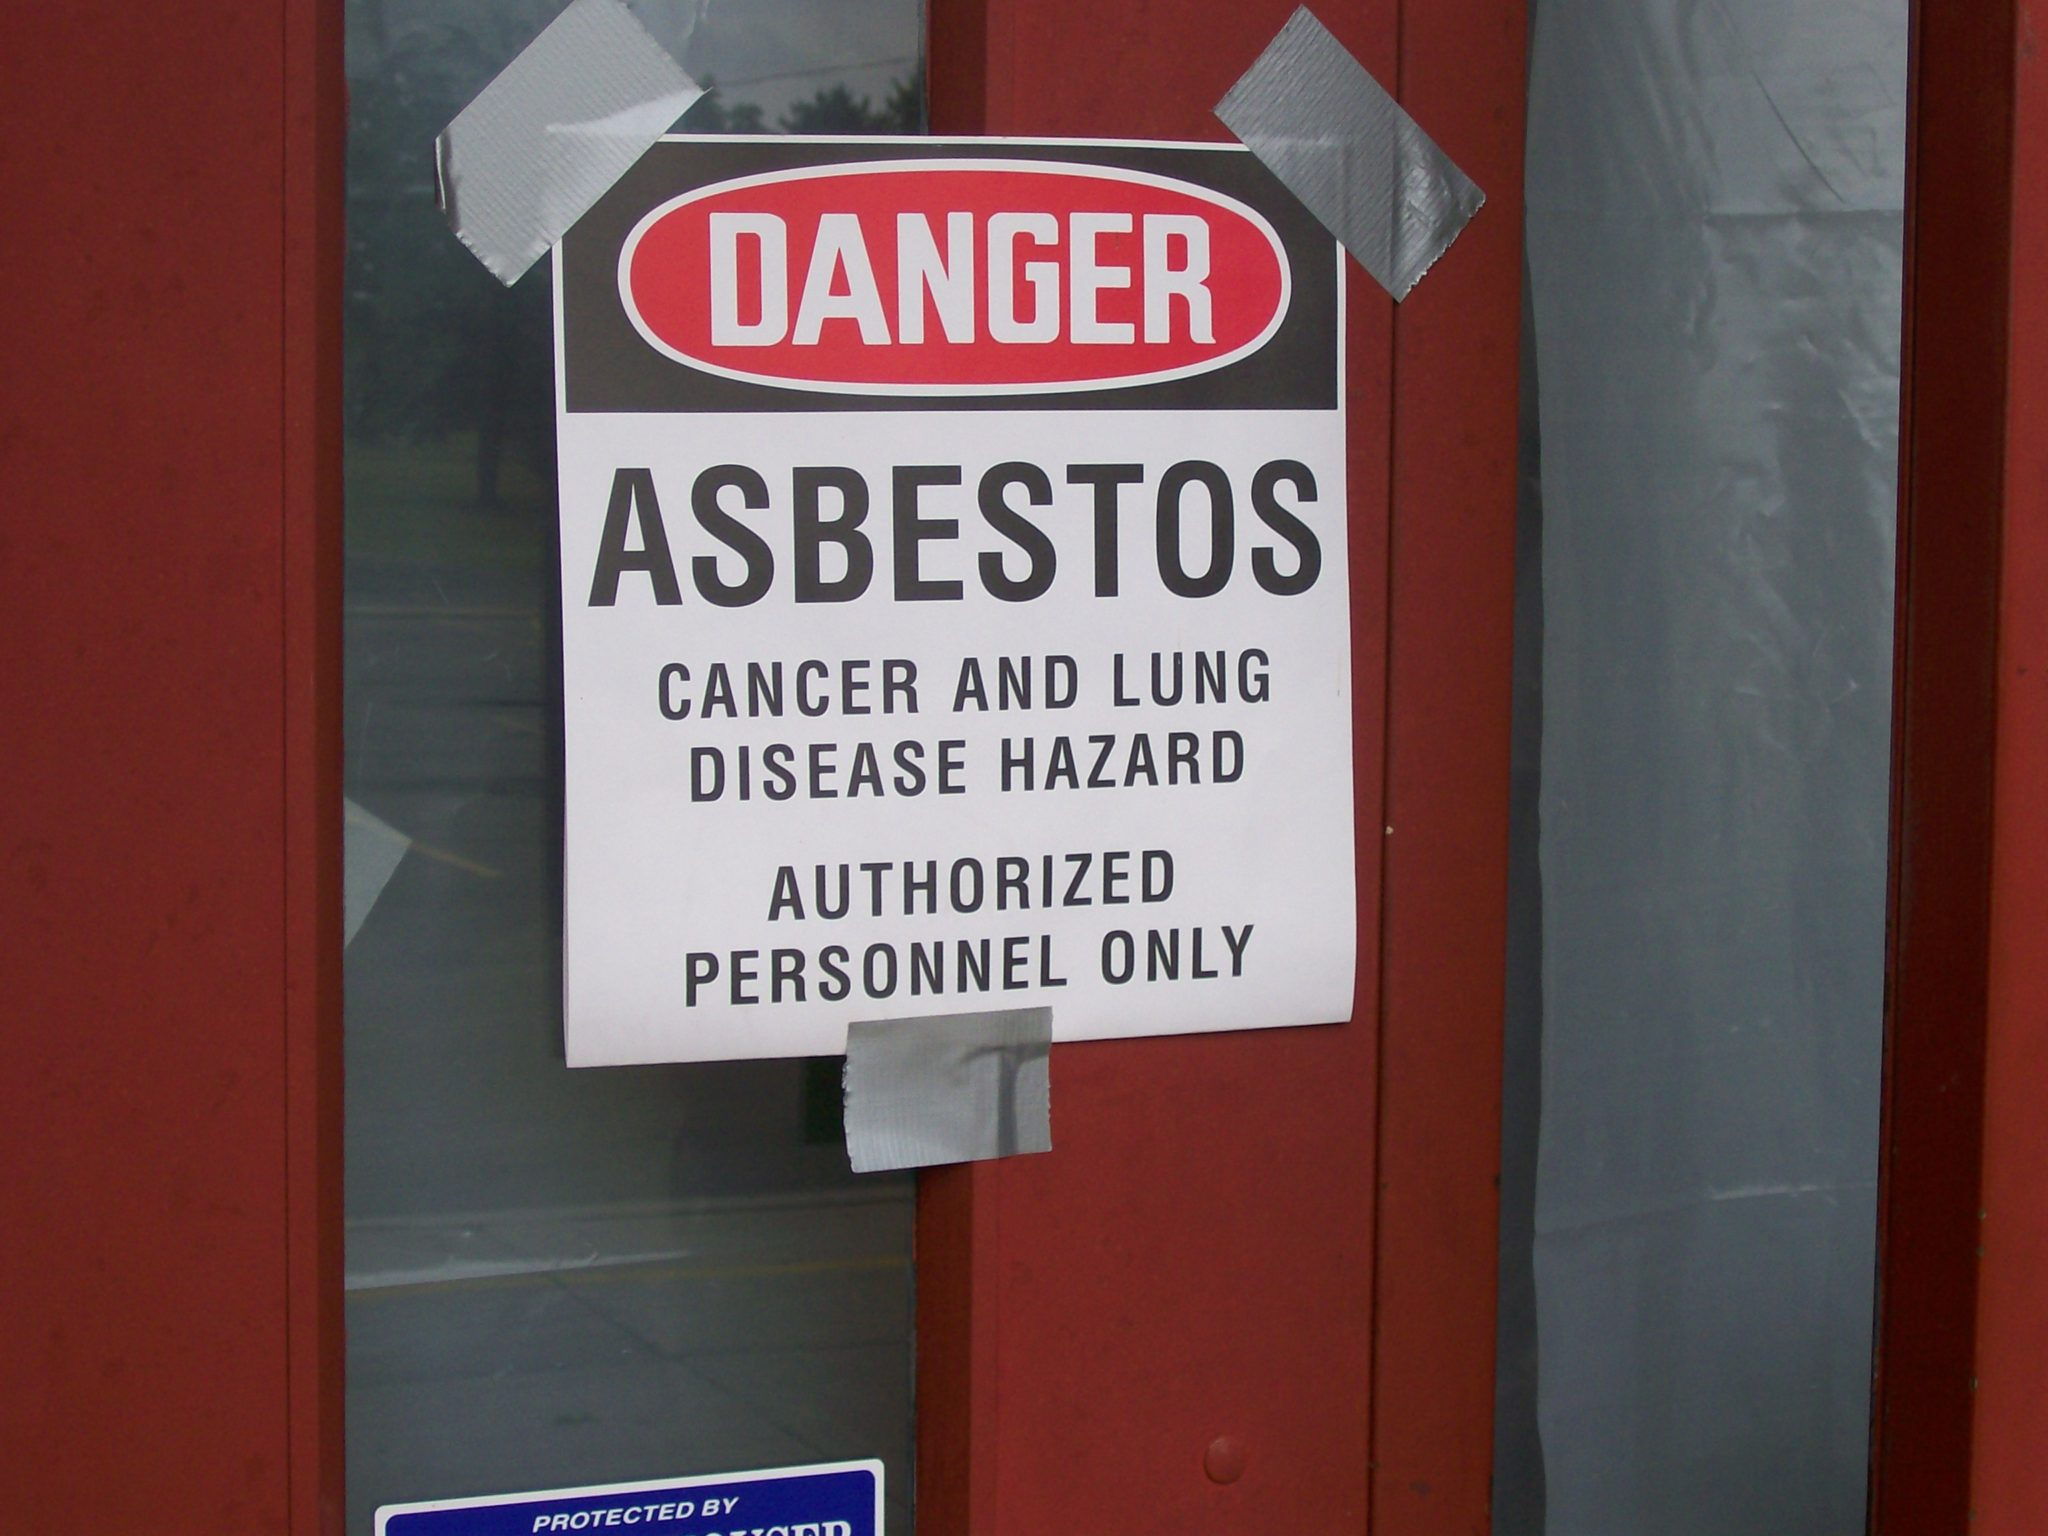 All you need to know about removing asbestos floor tiles asbestos danger asbestos floor tiles dailygadgetfo Images